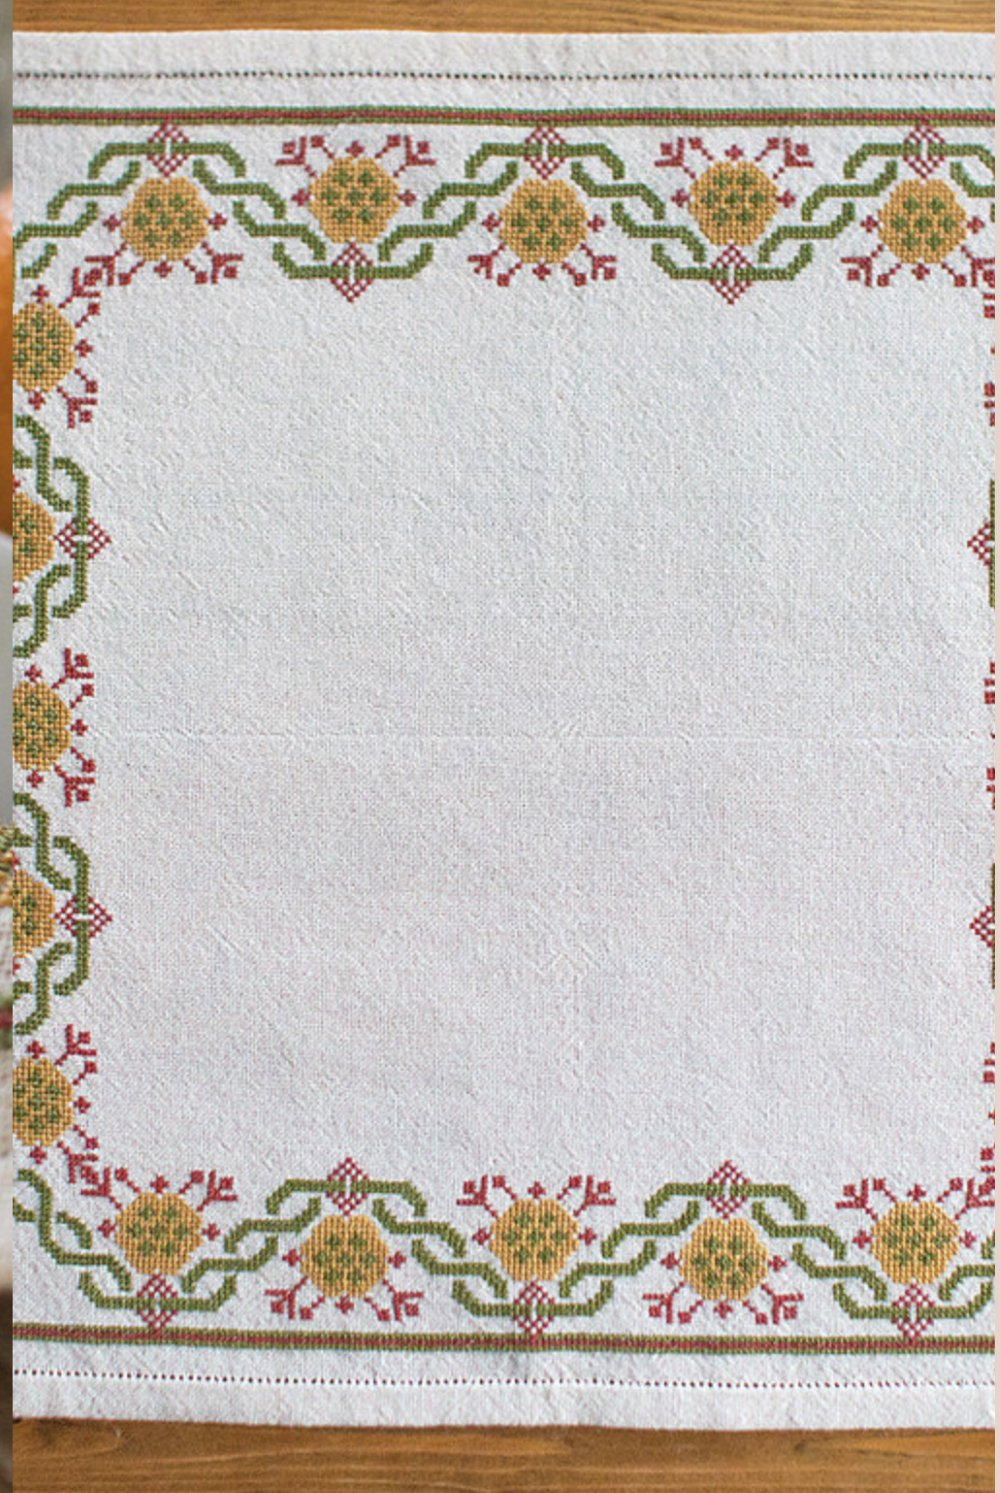 Avlea Embroidery Standard Kit #211